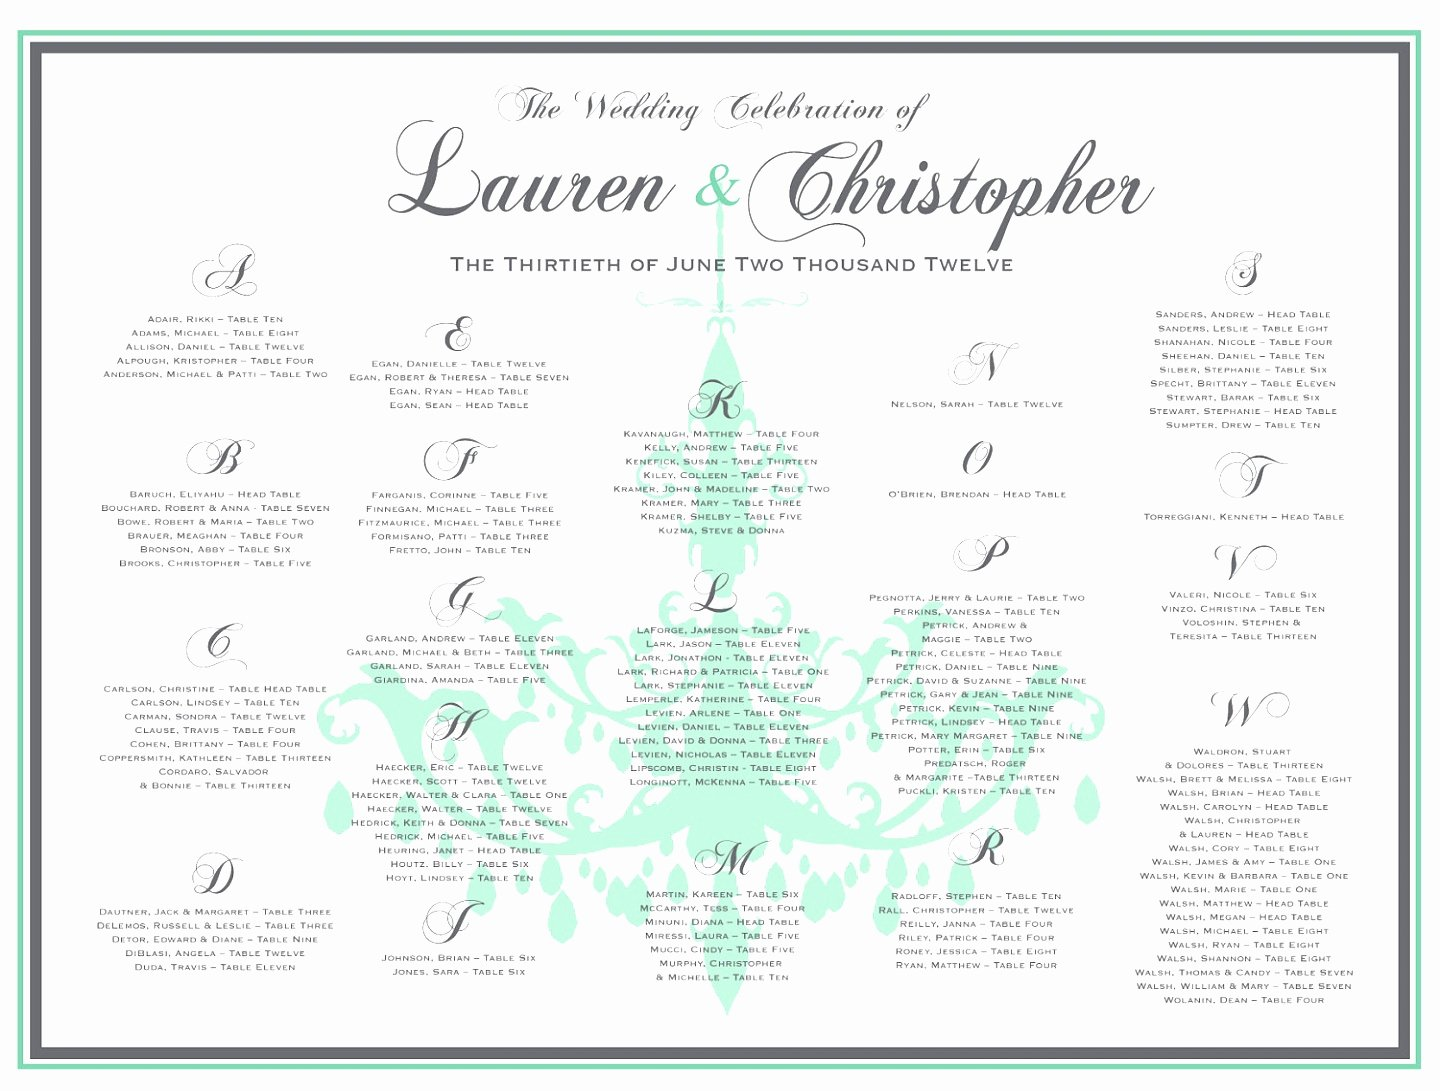 7 Seating Chart Template for Wedding Reception Yyrto